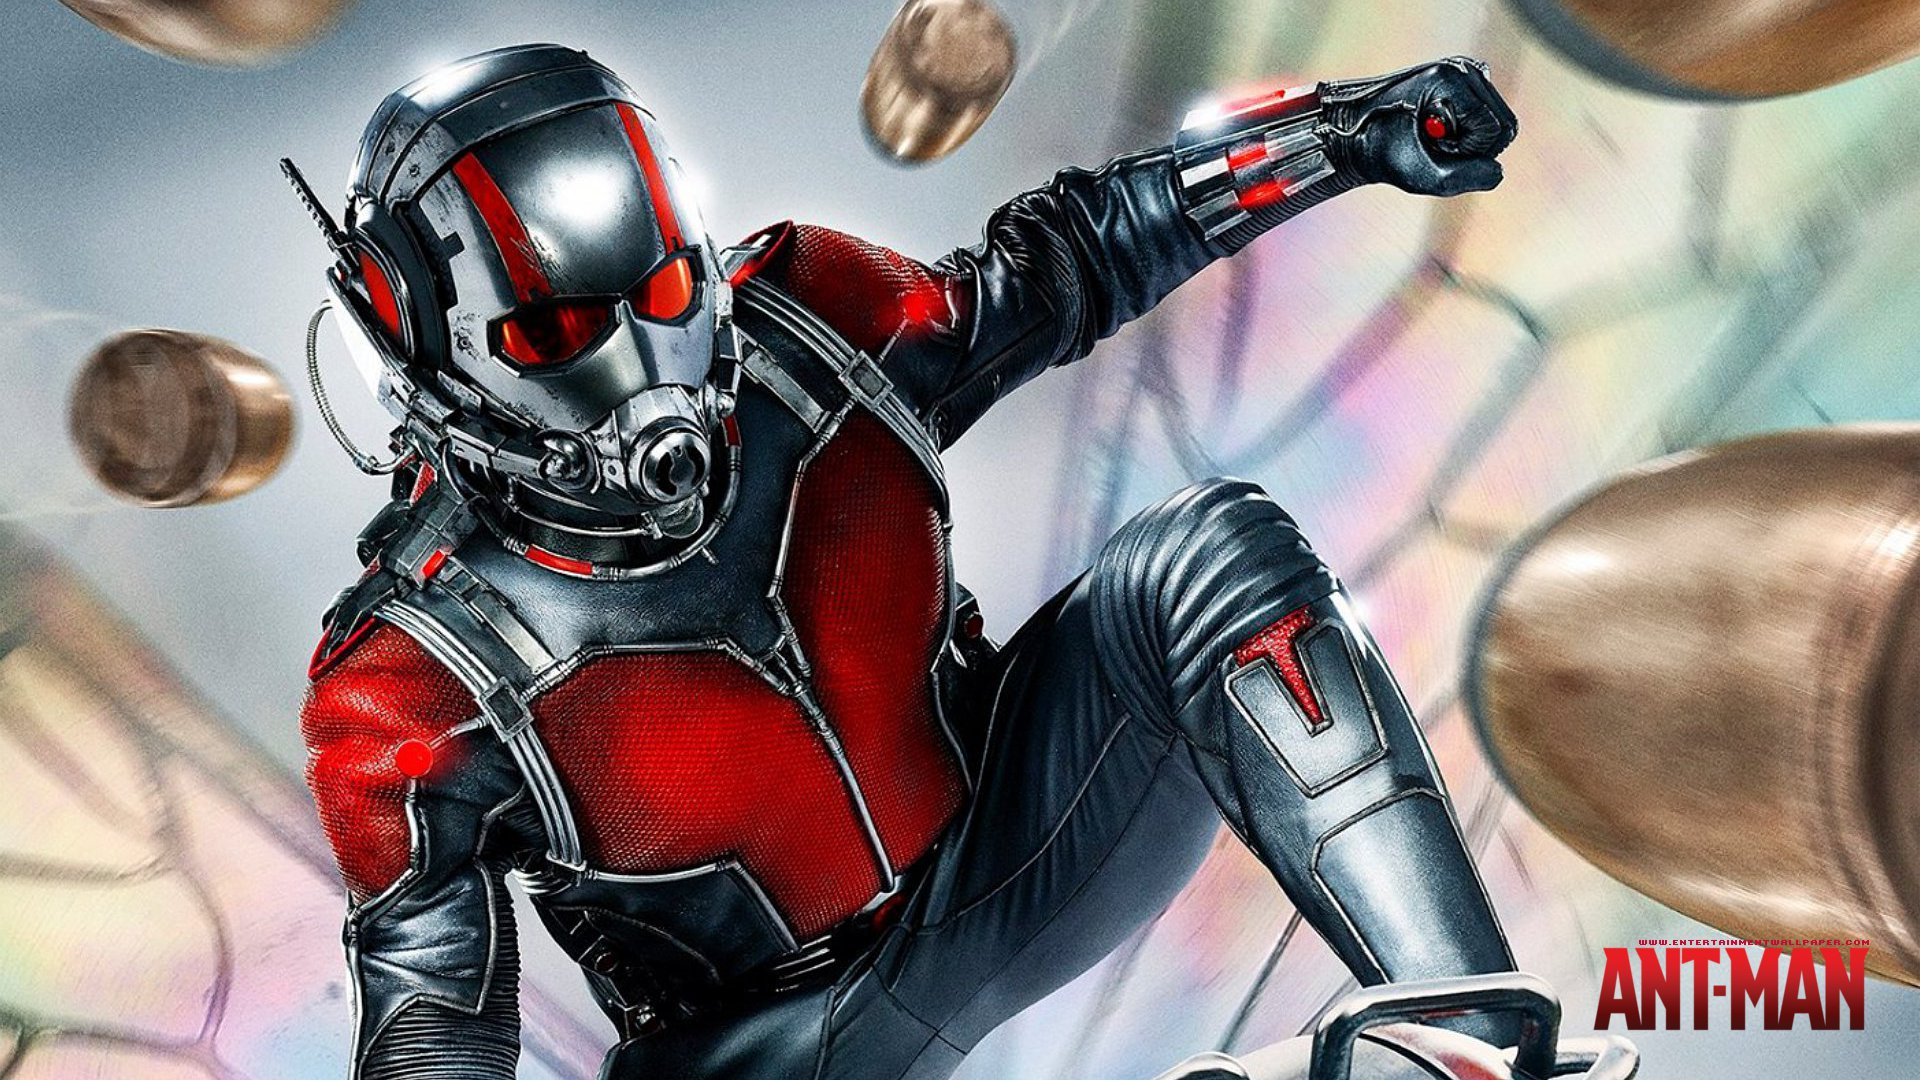 show ant man wallpaper 10046118 size 1920x1080 more ant man wallpaper 1920x1080